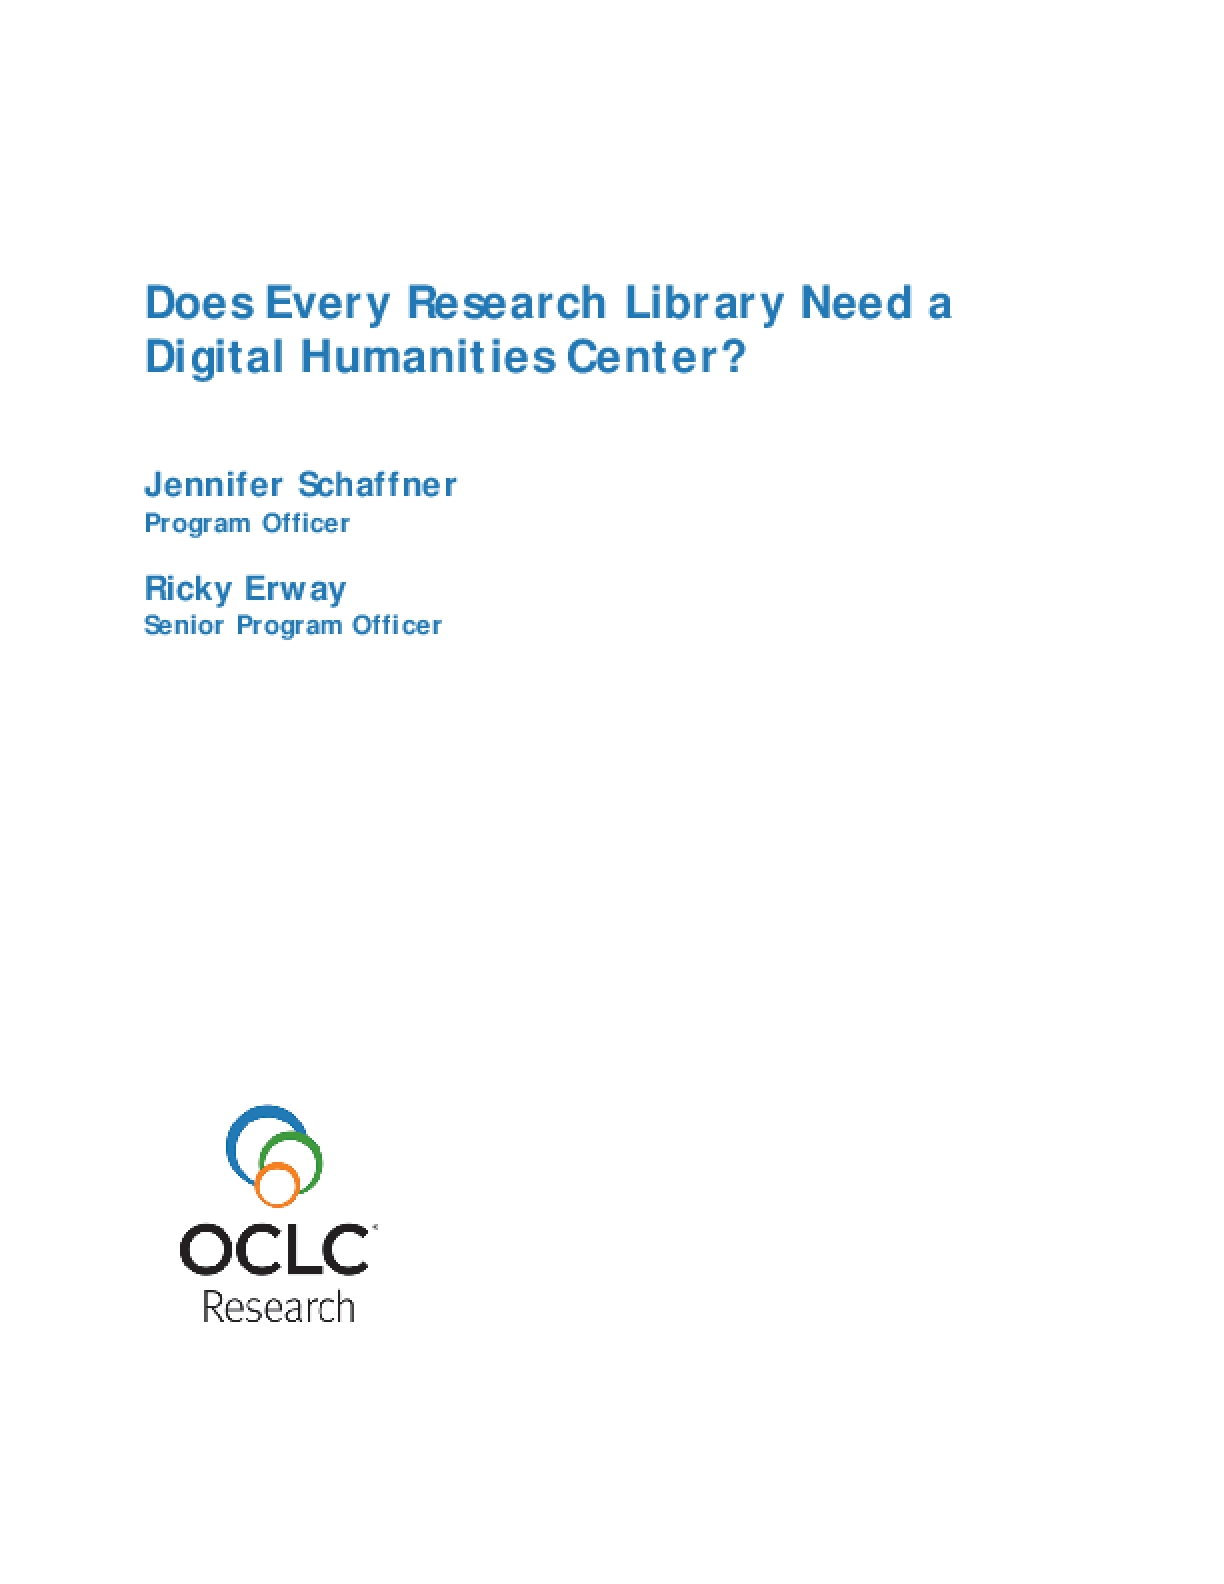 Does Every Research Library Need a Digital Humanities Center?